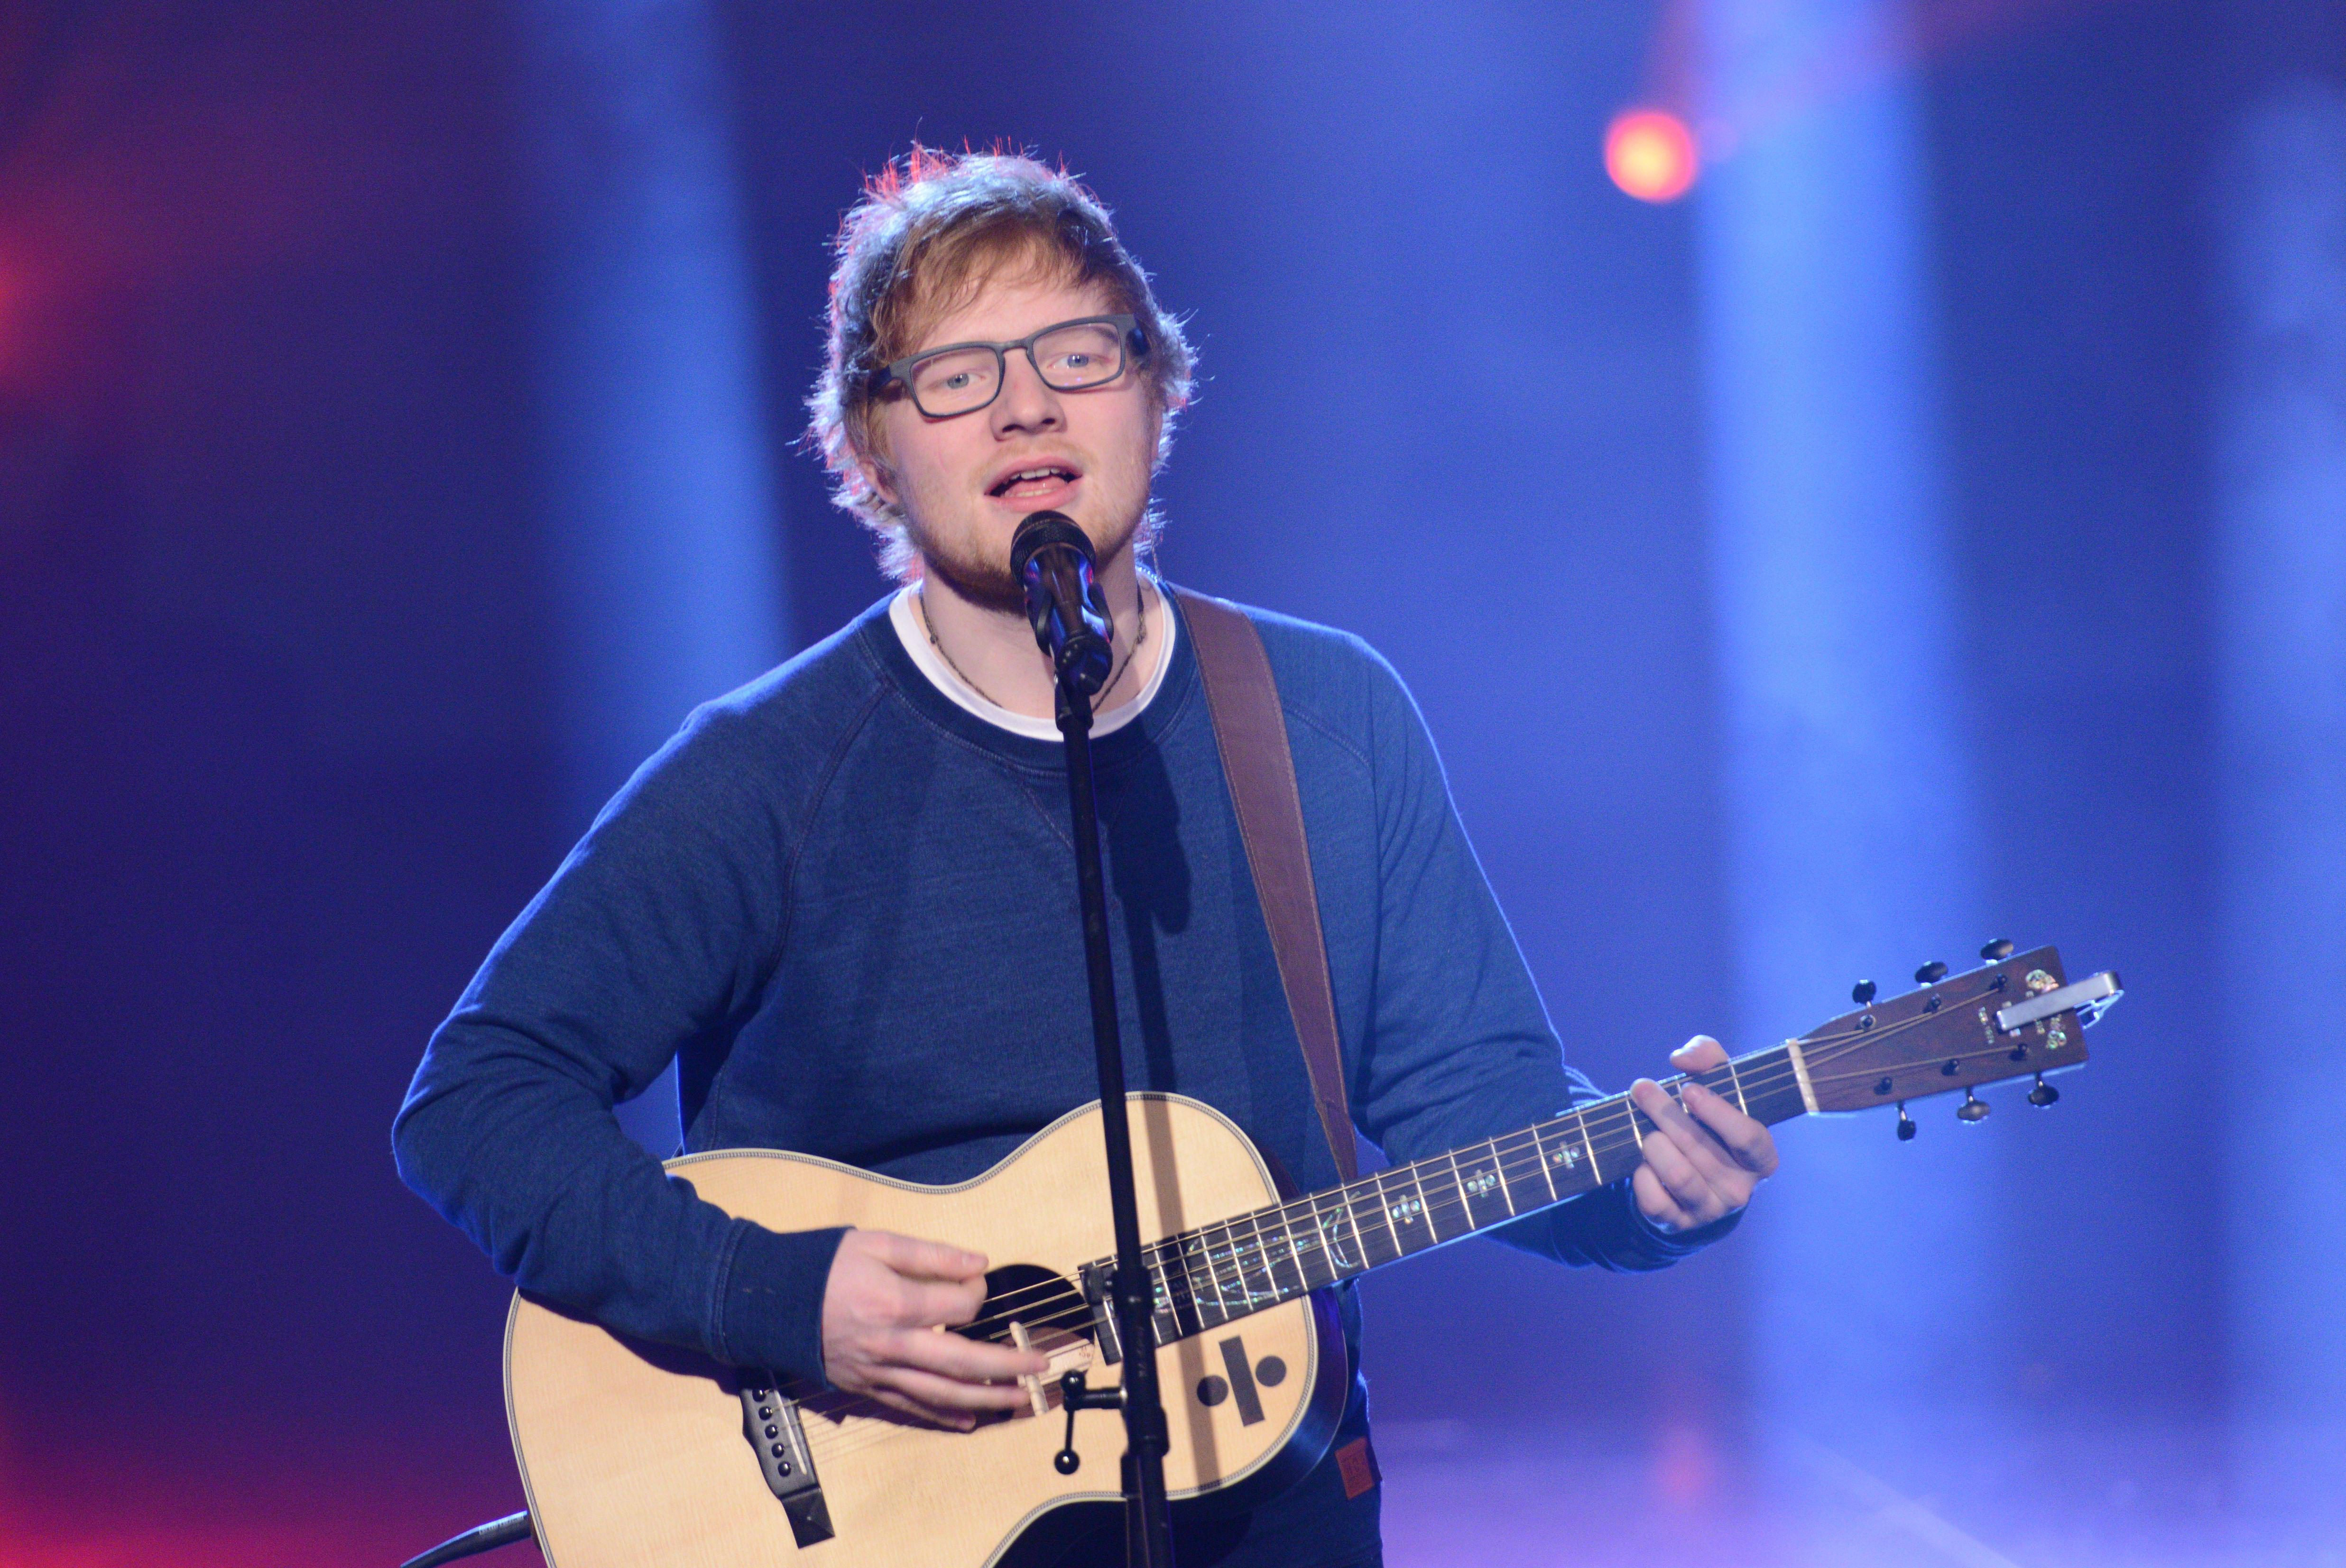 What is Ed Sheeran's net worth, how old is he, who's his girlfriend Cherry Seaborn and what are his biggest songs?